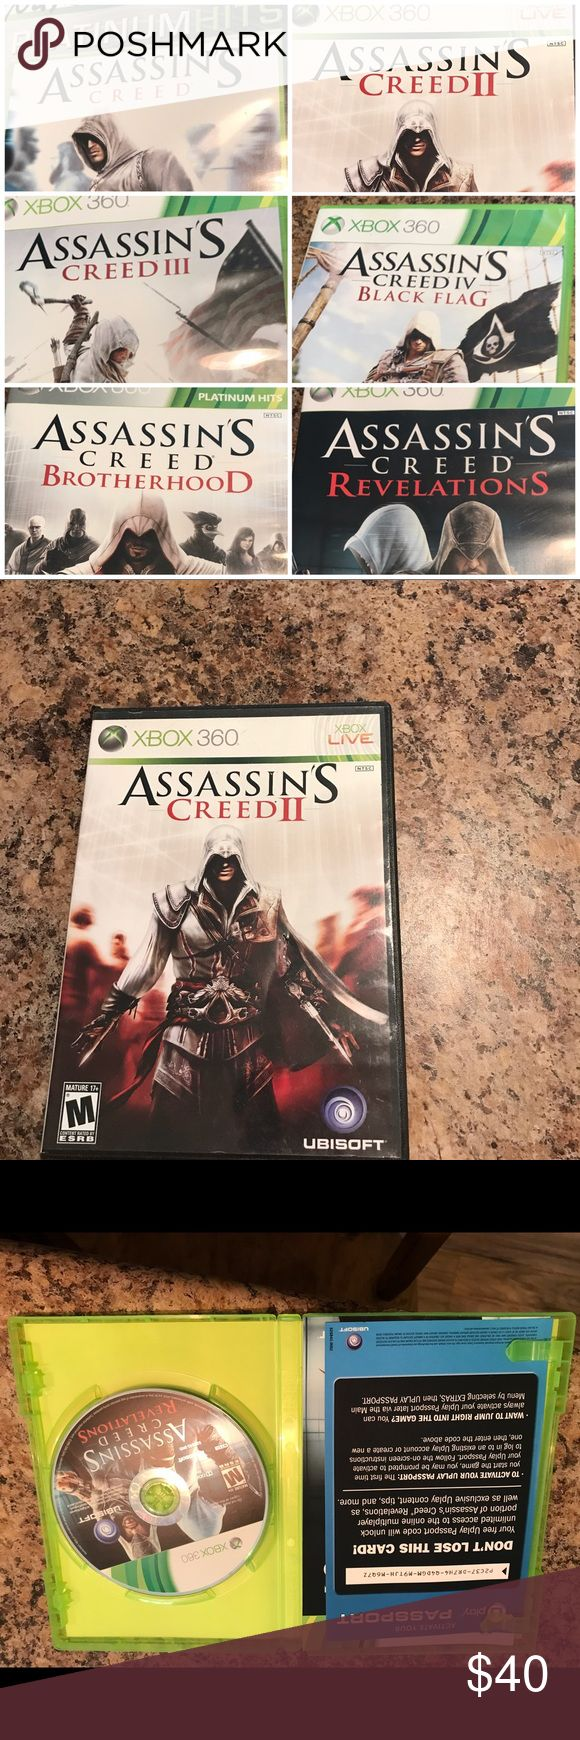 Xbox 360. Assassin's Creed collection Xbox 360 games in excellent condition. Bundle of Assassin's Creed 1-4. Brotherhood and Revelations. No reasonable offer refused. Other